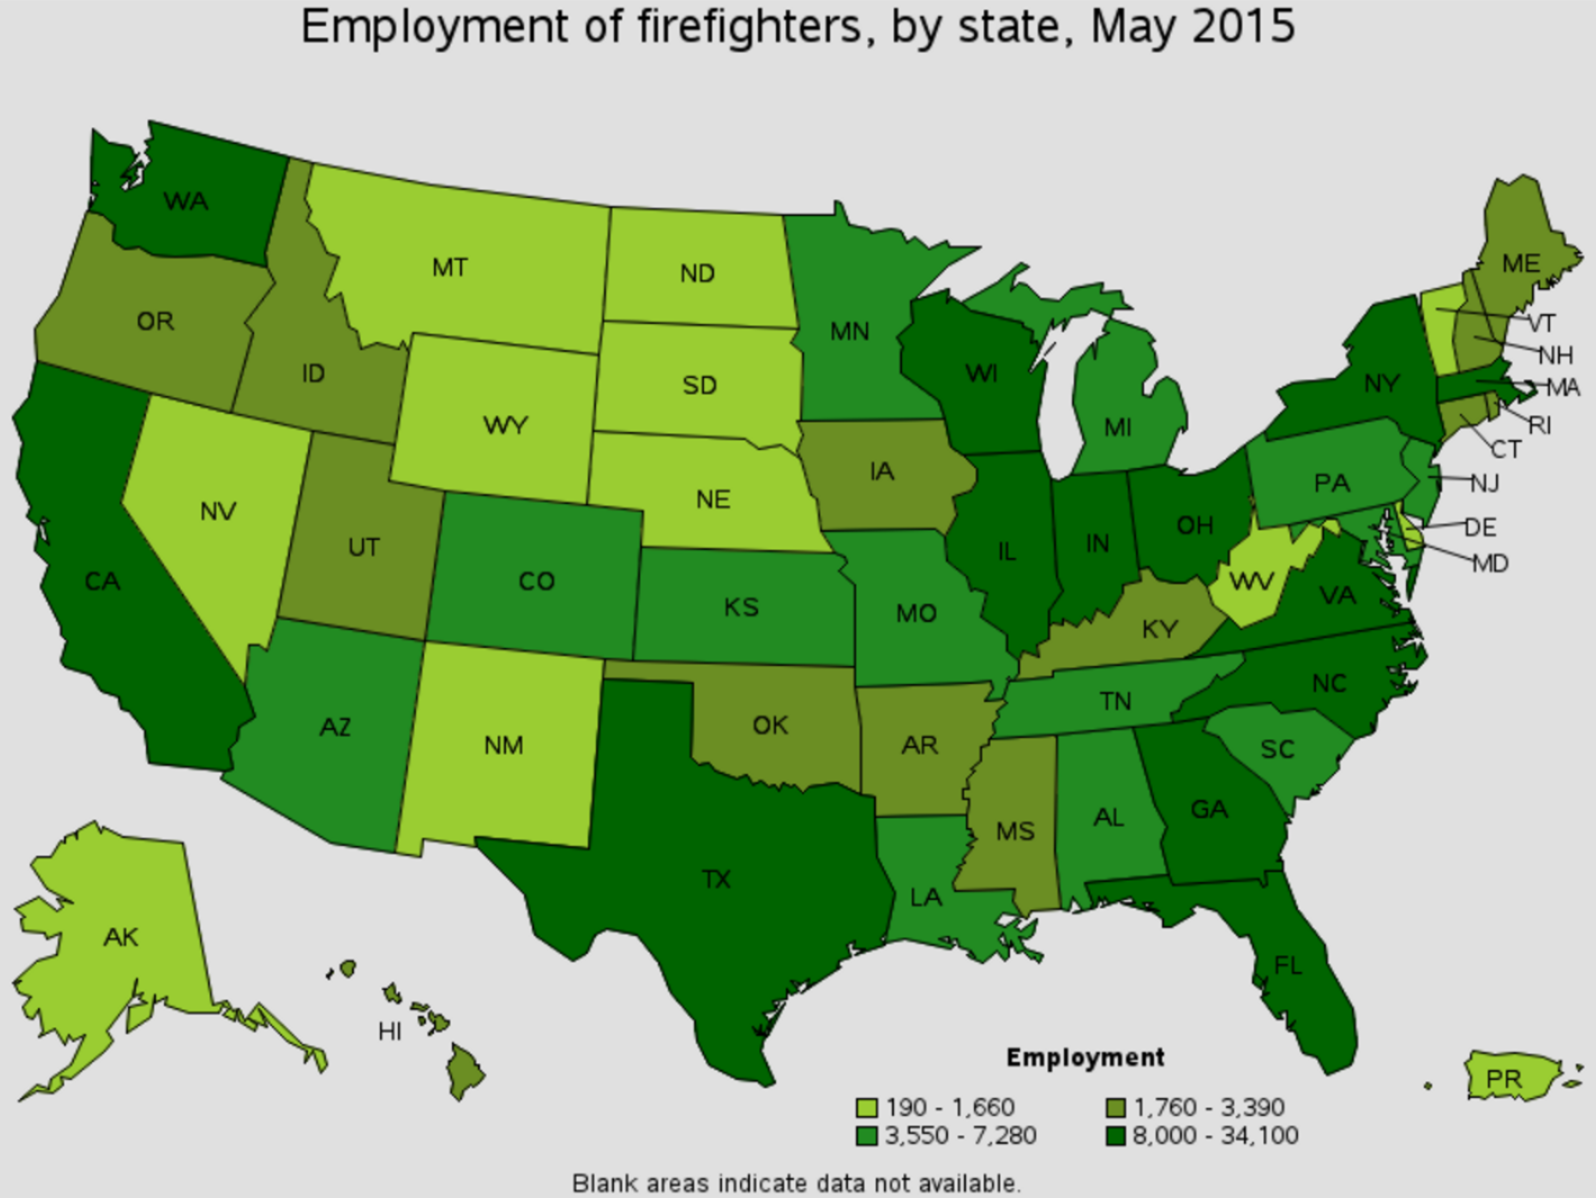 firefighter job outlook by state Wood South Dakota